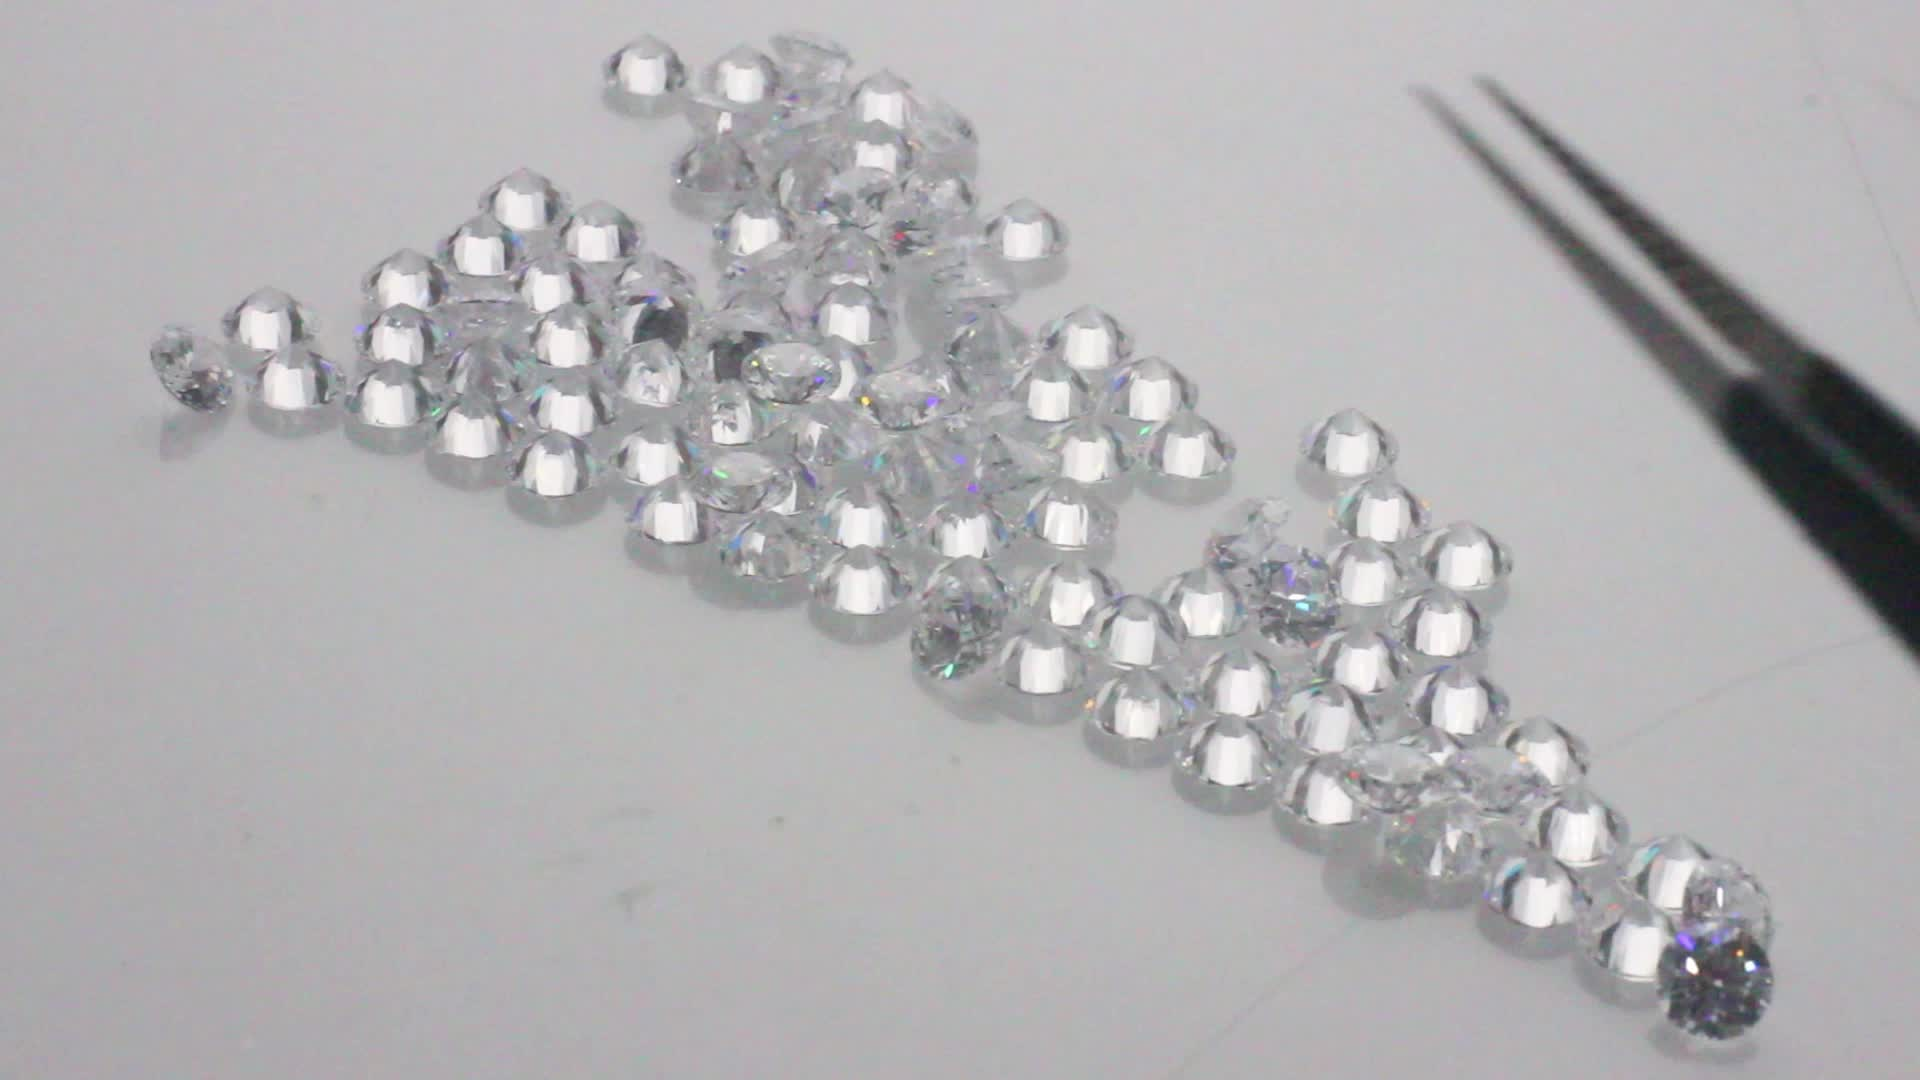 1-2.0mm Carat Excellent Polished Round Brilliant HPHT Loose CVD Diamond